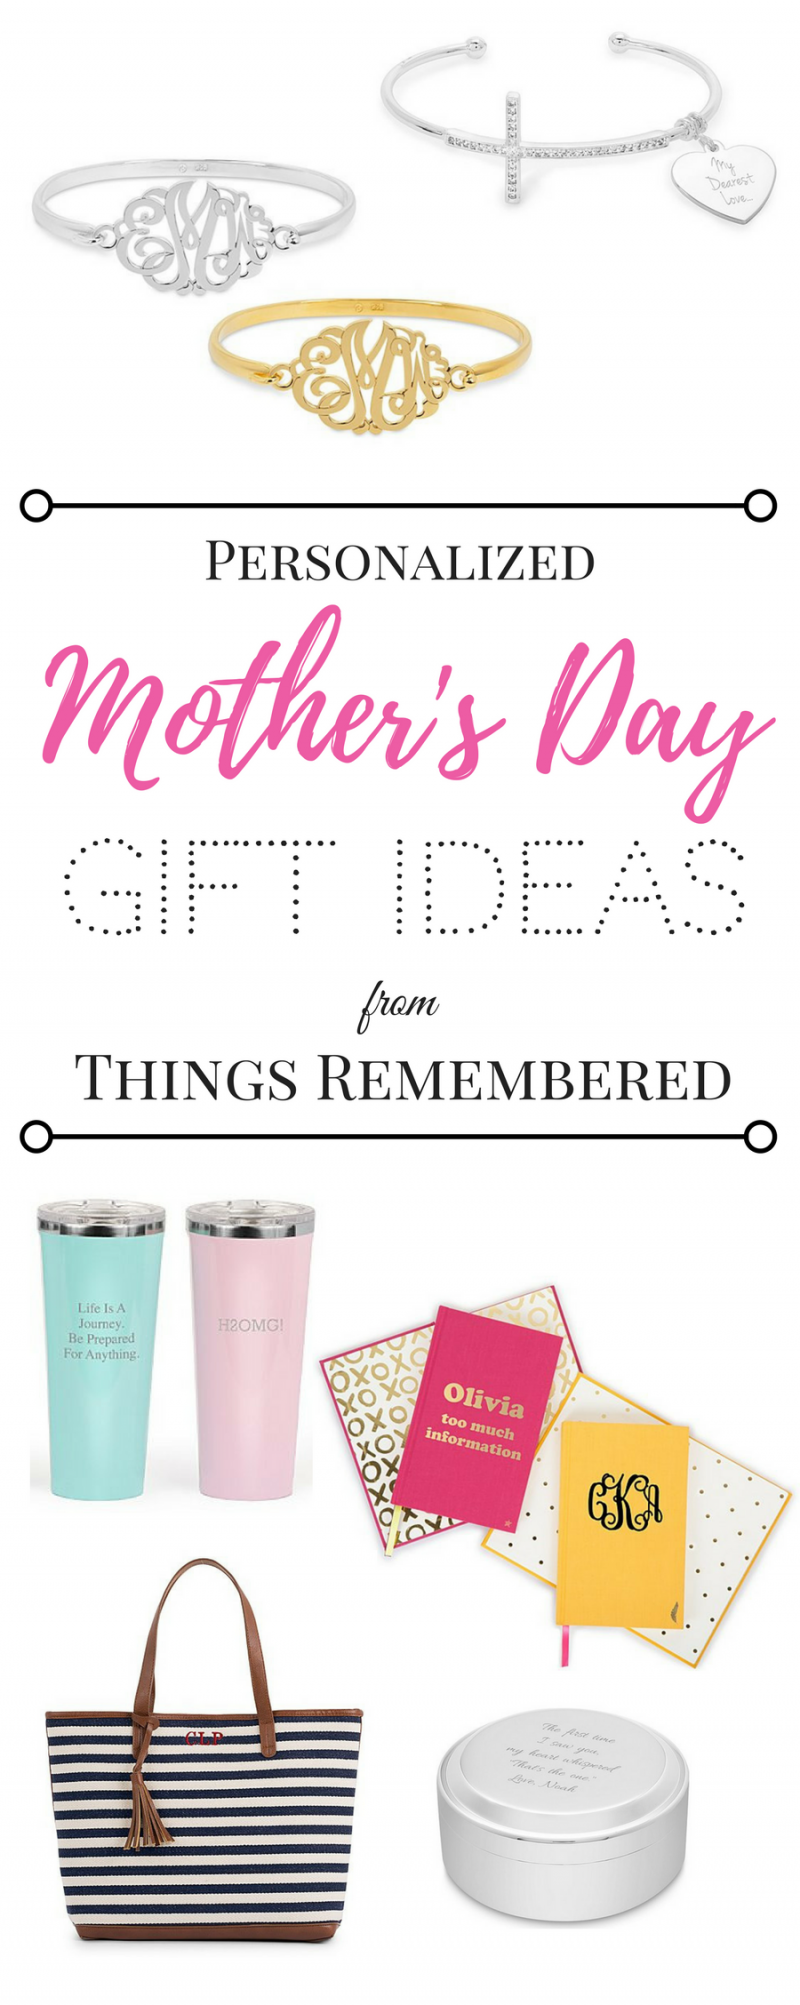 Personalized Mother 39 S Day Gift Ideas From Things